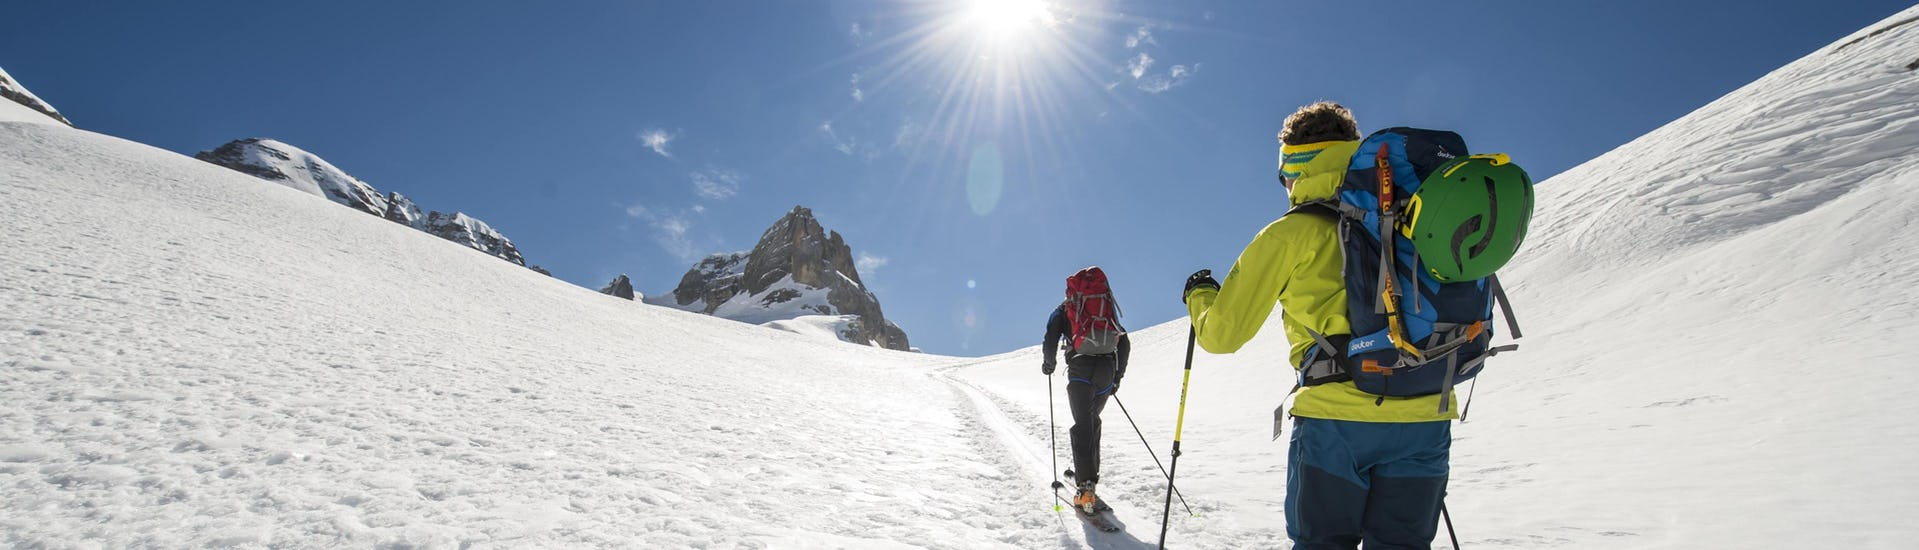 A ski touring guide is guiding another skier to the mountain summit while on a ski tour in the ski resort of La Clusaz.